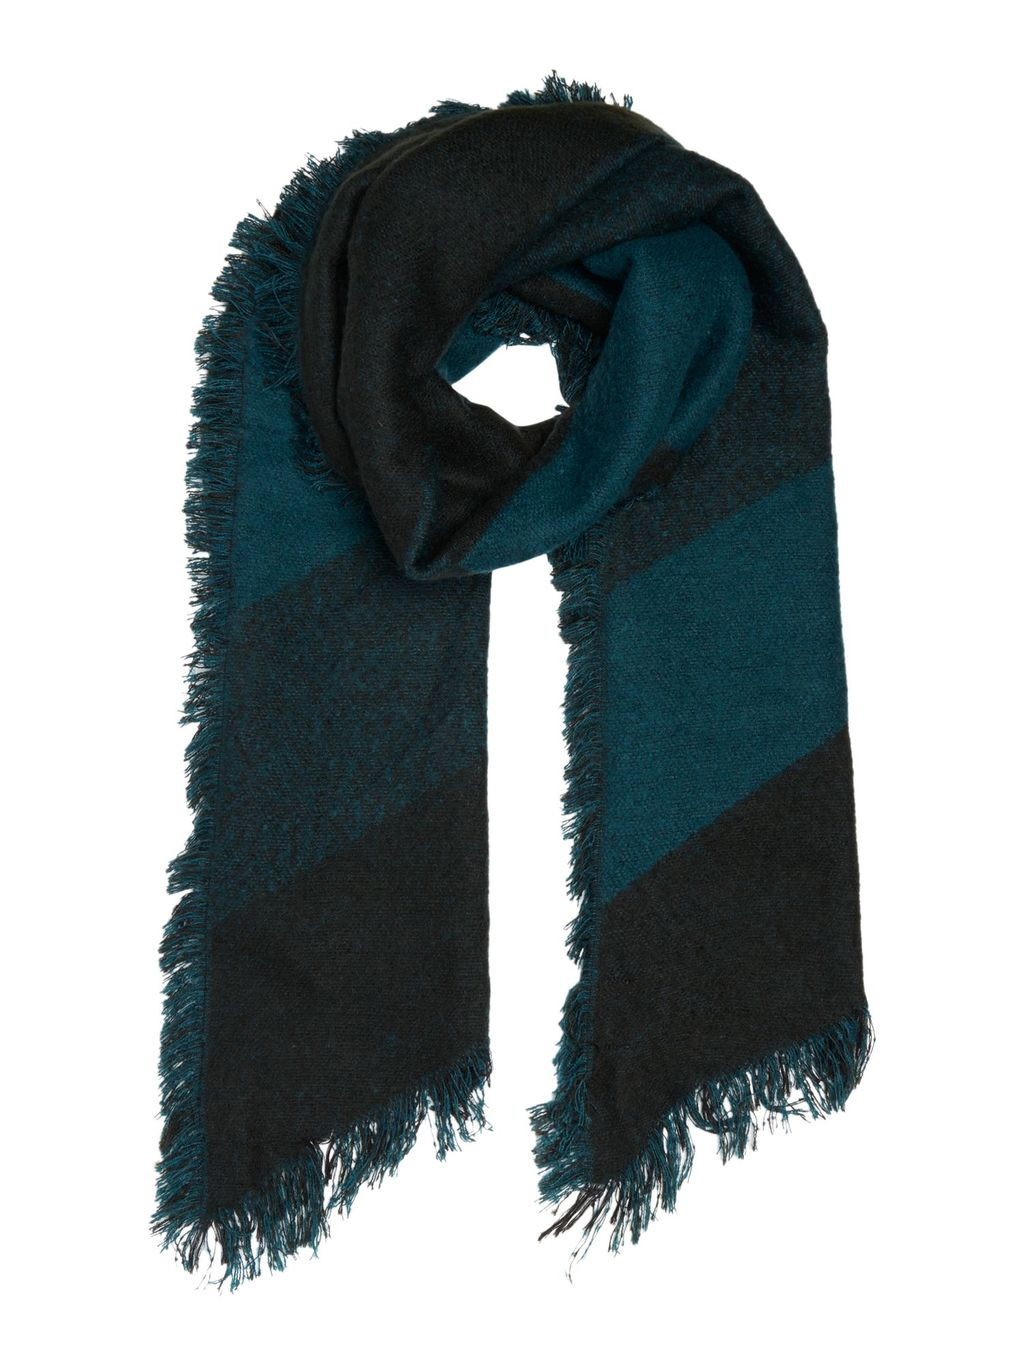 Prism Woven Scarf, Teal - predominant colour: teal; secondary colour: black; occasions: casual; type of pattern: standard; style: regular; size: standard; material: fabric; embellishment: fringing; pattern: striped; multicoloured: multicoloured; season: a/w 2016; wardrobe: highlight